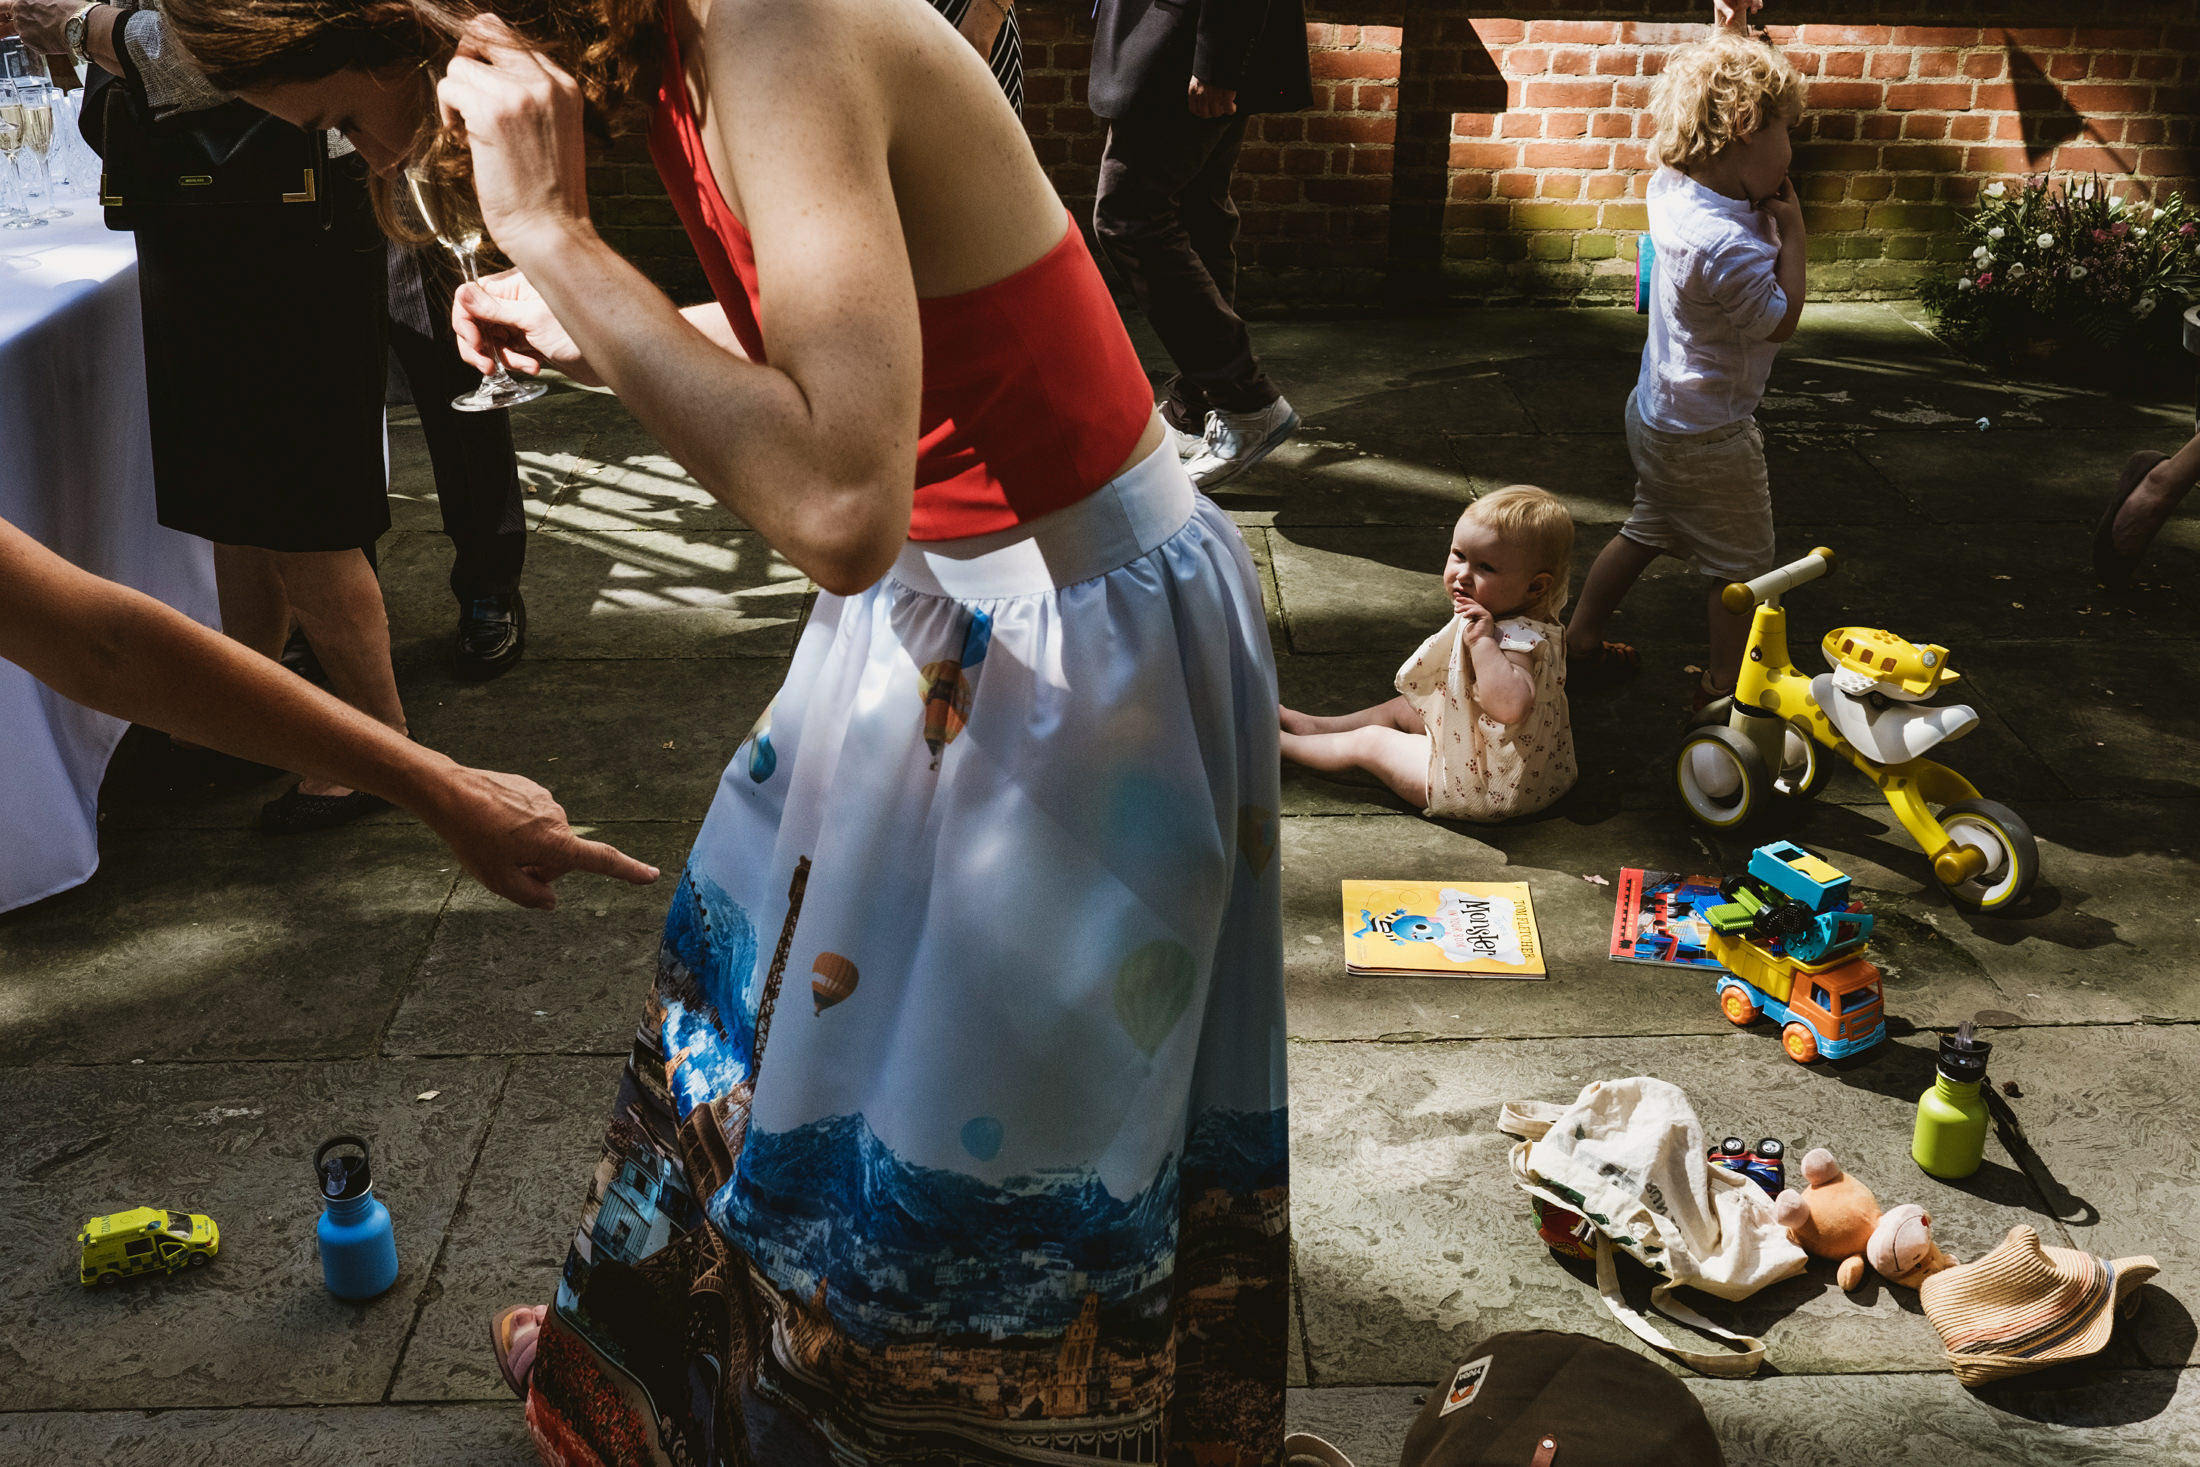 A hand points to a bridesmaid's unusual Paris skyline dress, the bridesmaid's face cropped out of the frame. To the right a little girl sits on the ground next to a yellow tricycle. Other guest's legs, feet and various toys are scattered between, filling the frame.